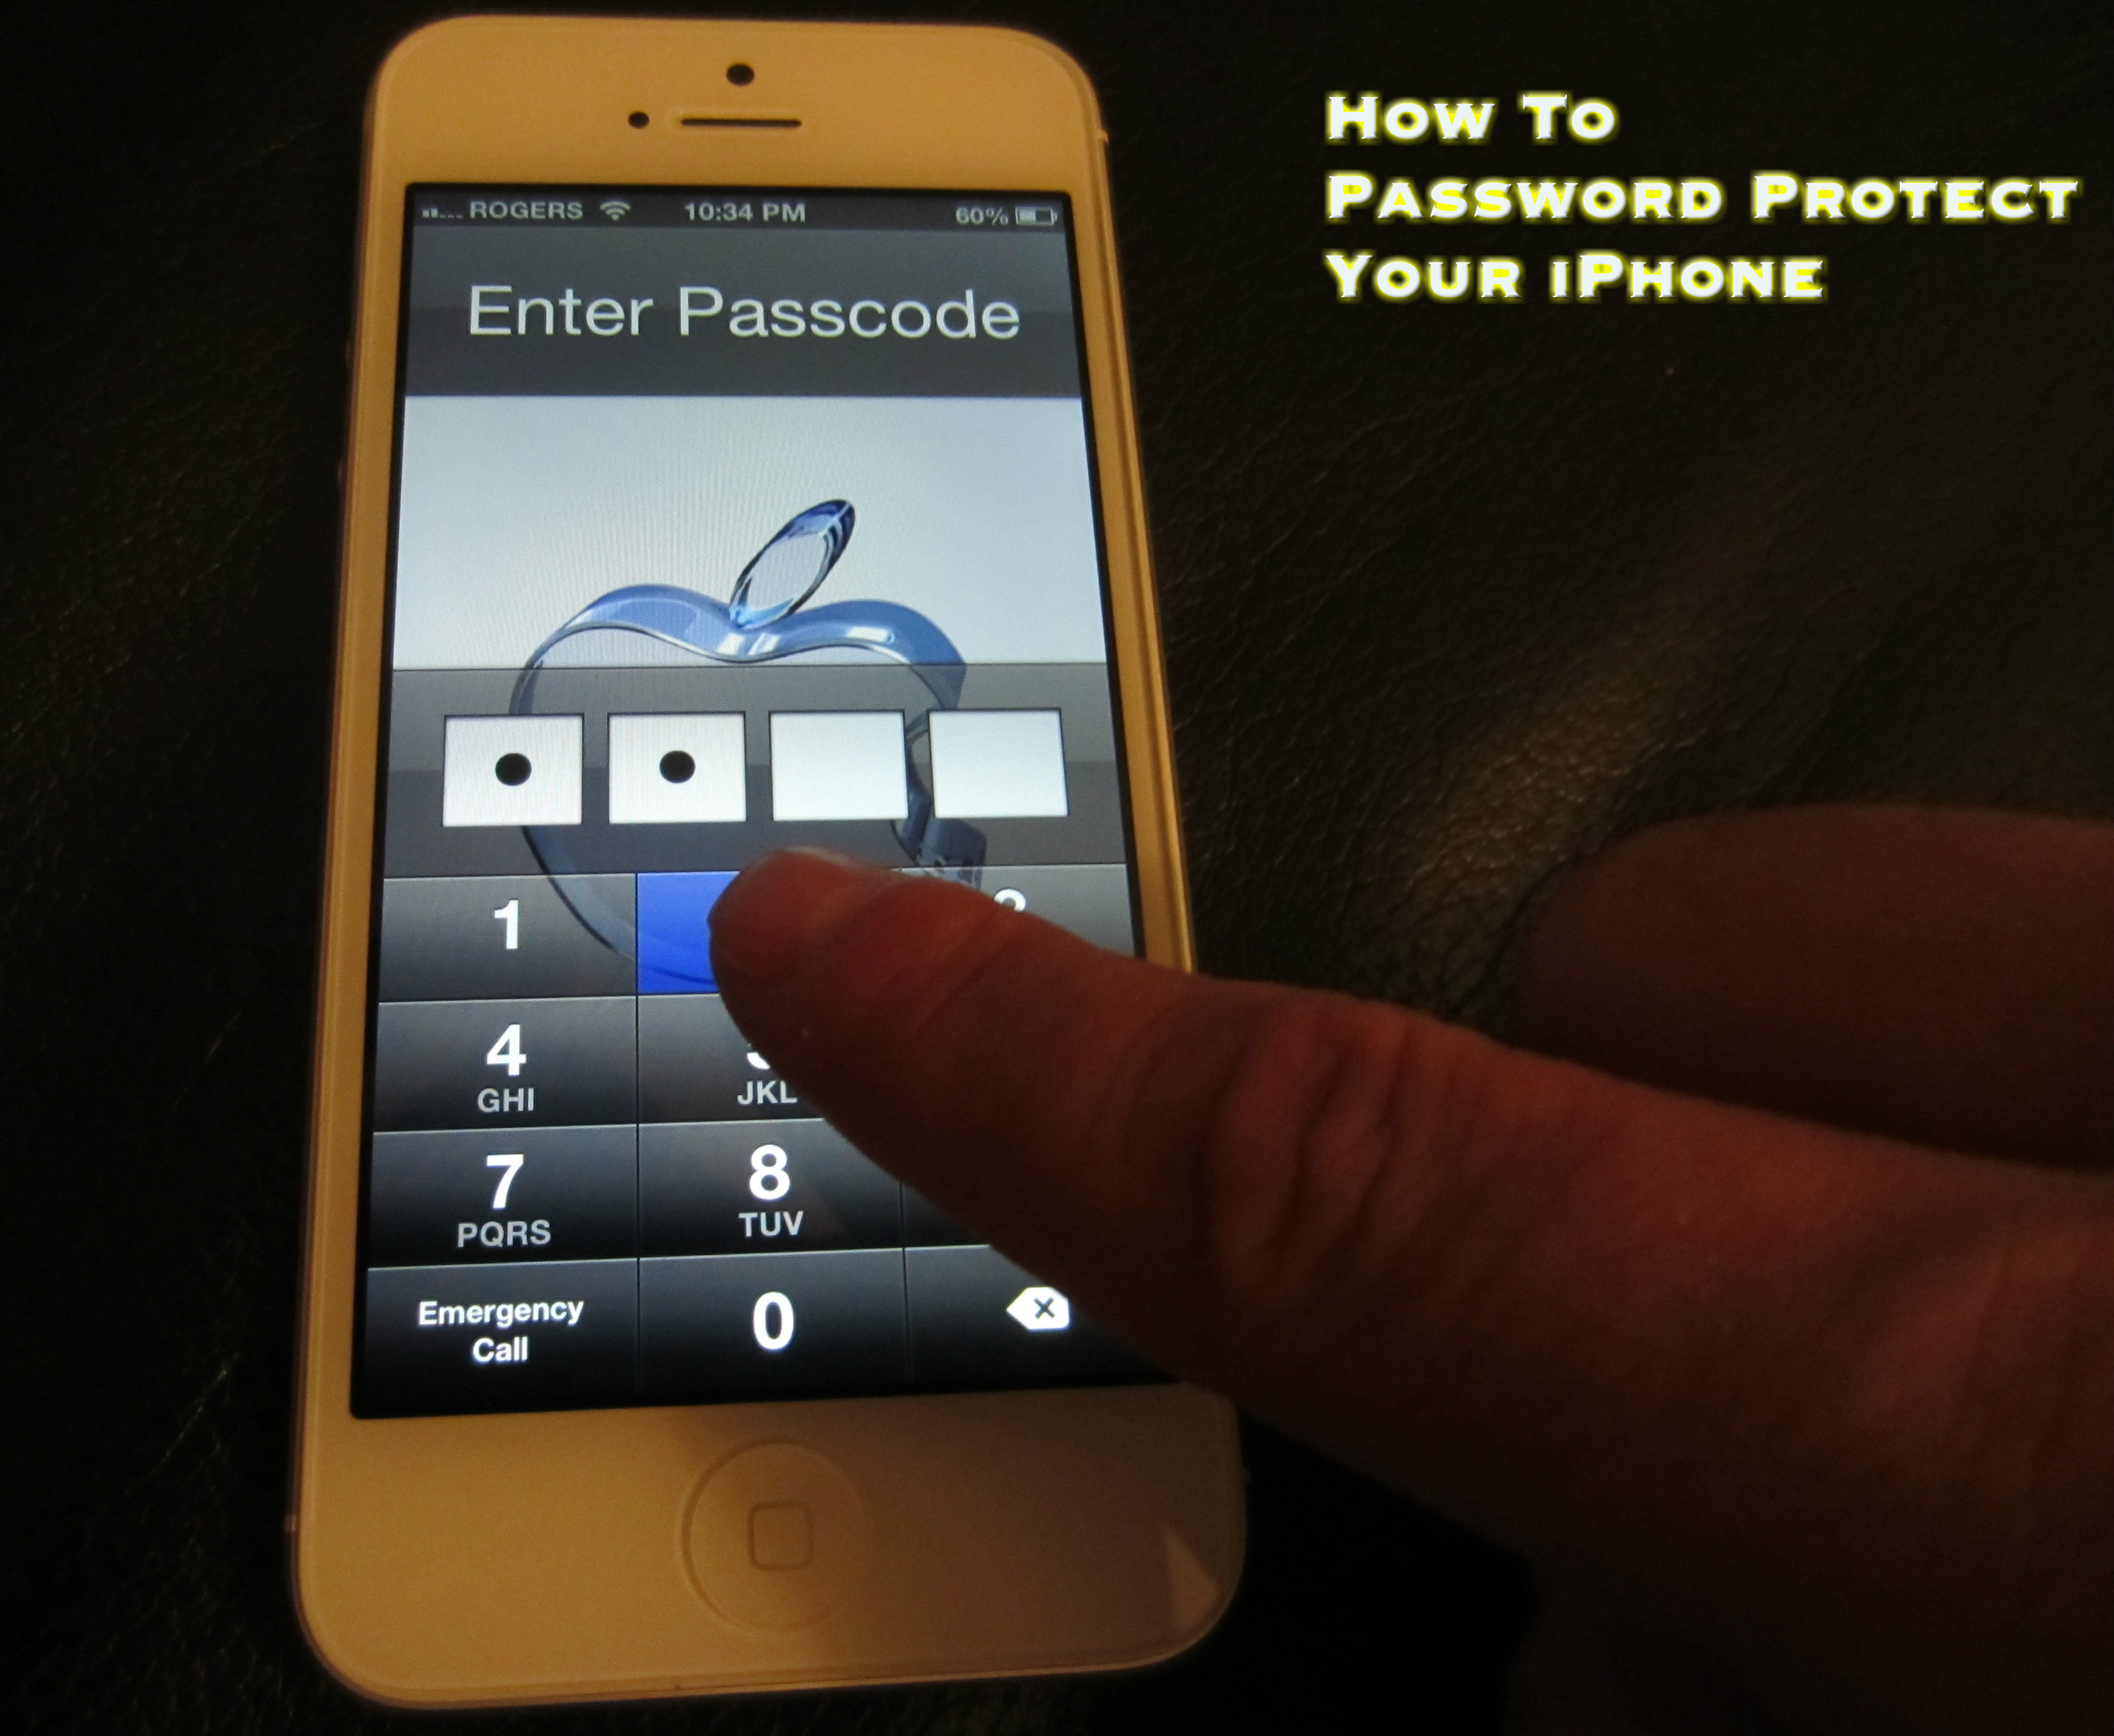 How To Password Protect Your iPhone 5, 4s and 4 - Simple iPhone Pascode  Lock -